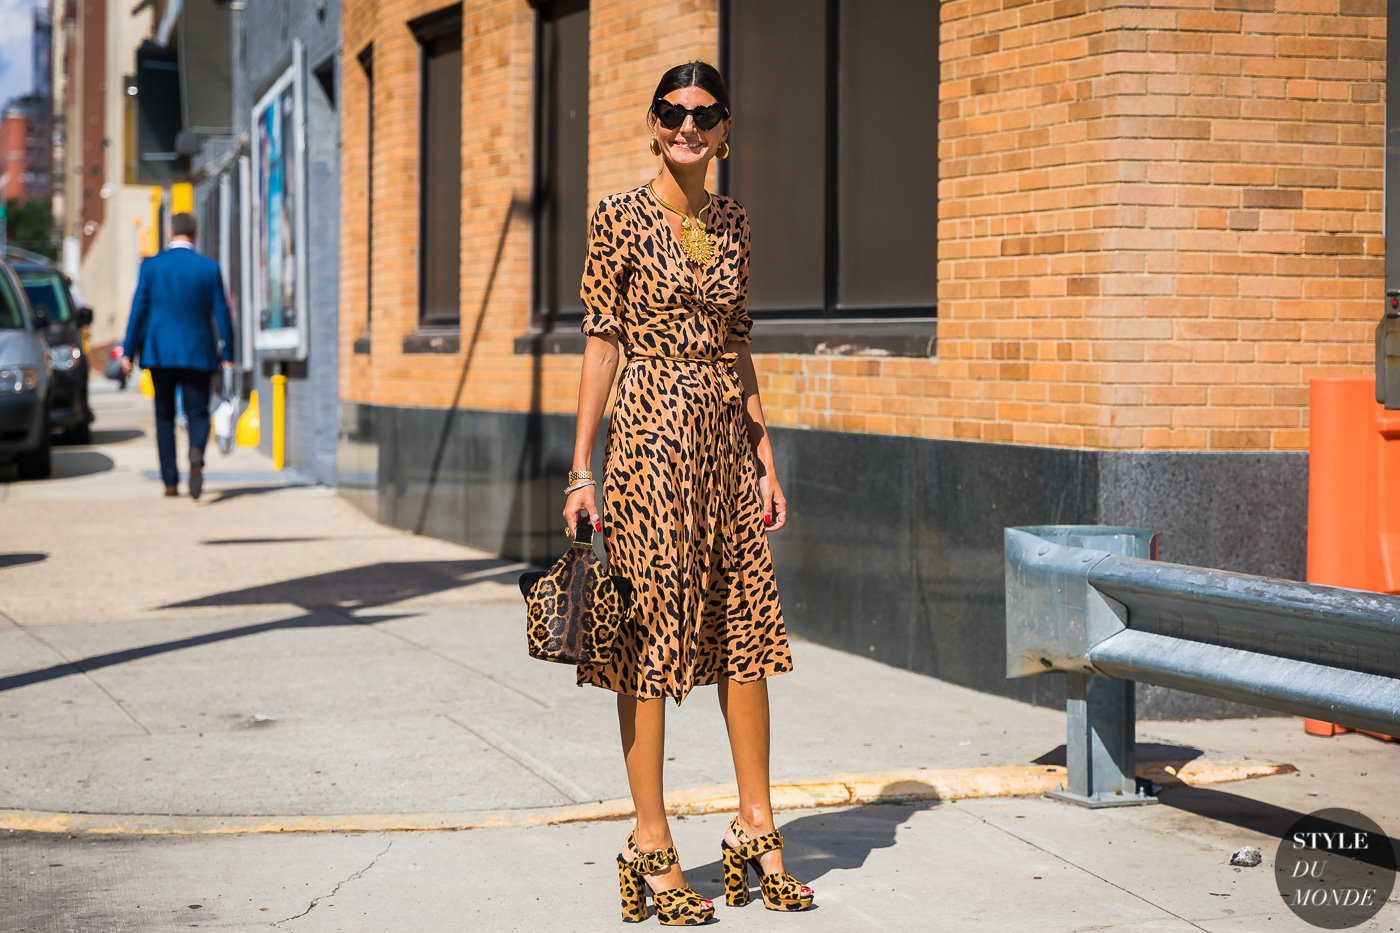 Giovanna Battaglia Engelbert by STYLEDUMONDE Street Style Fashion Photography_48A8362